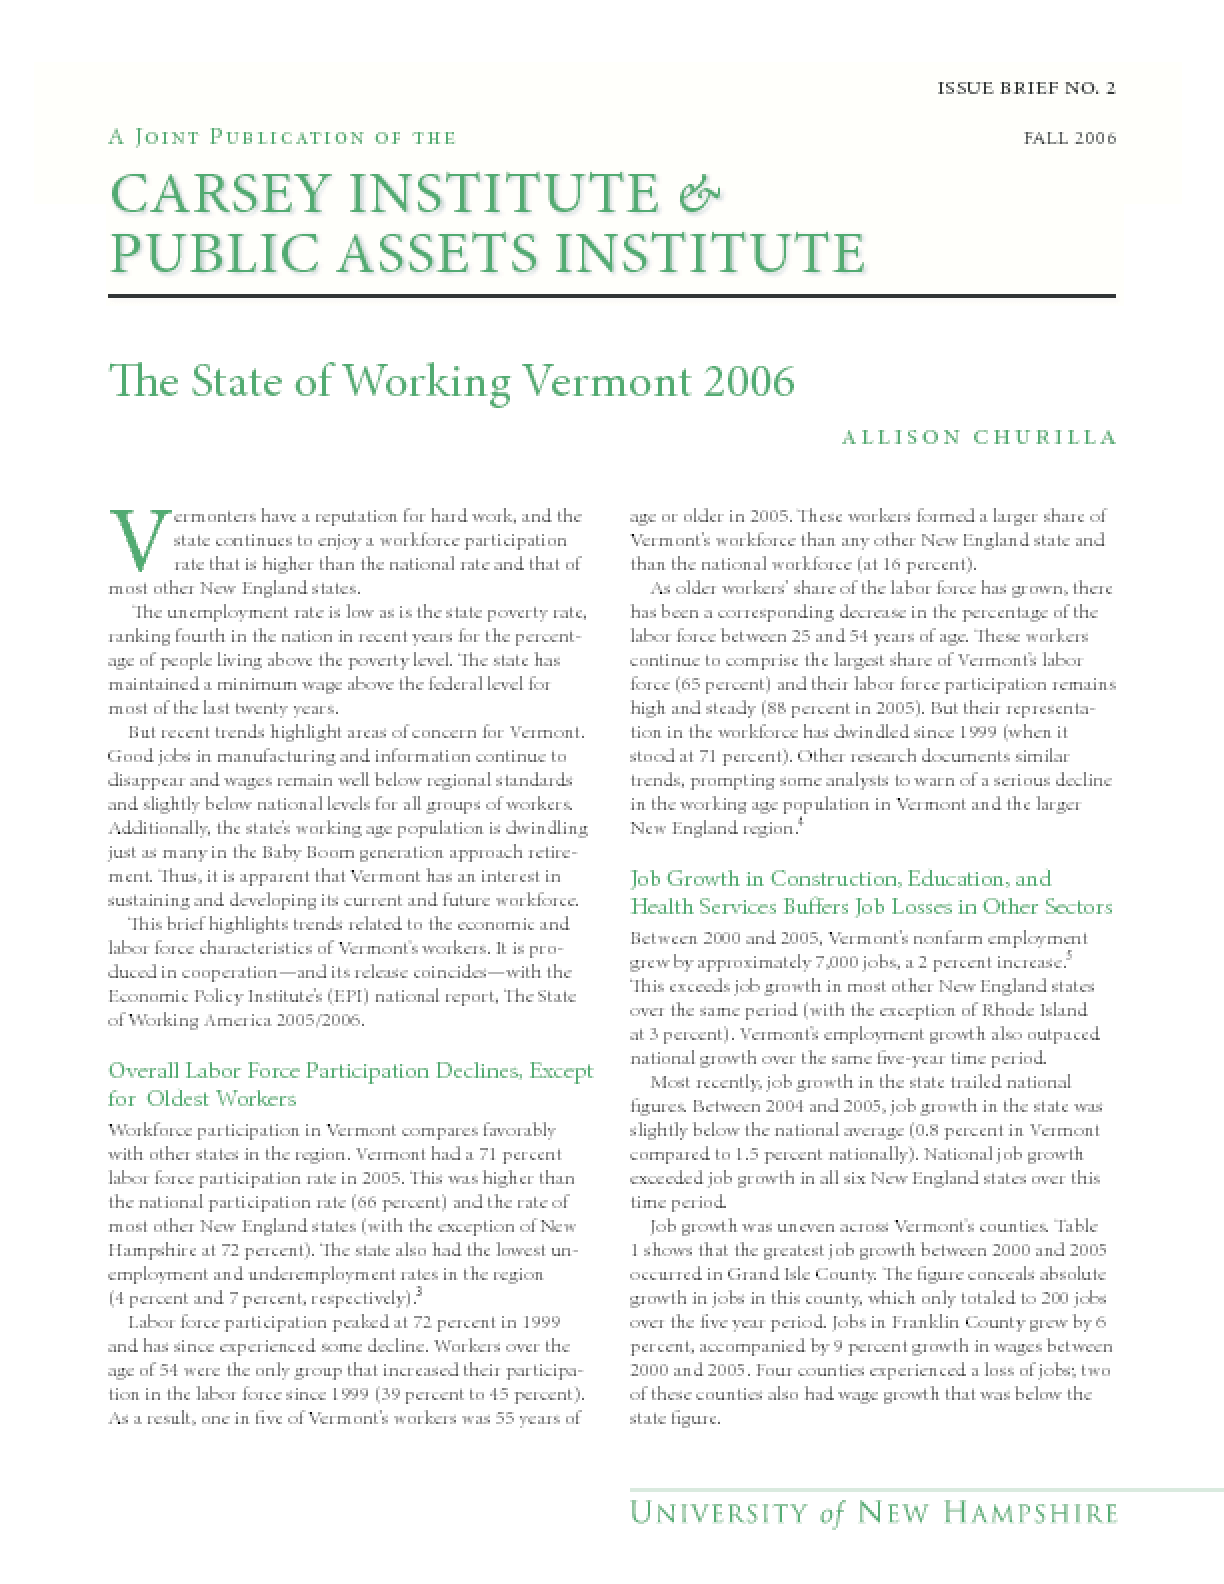 The State of Working Vermont 2006